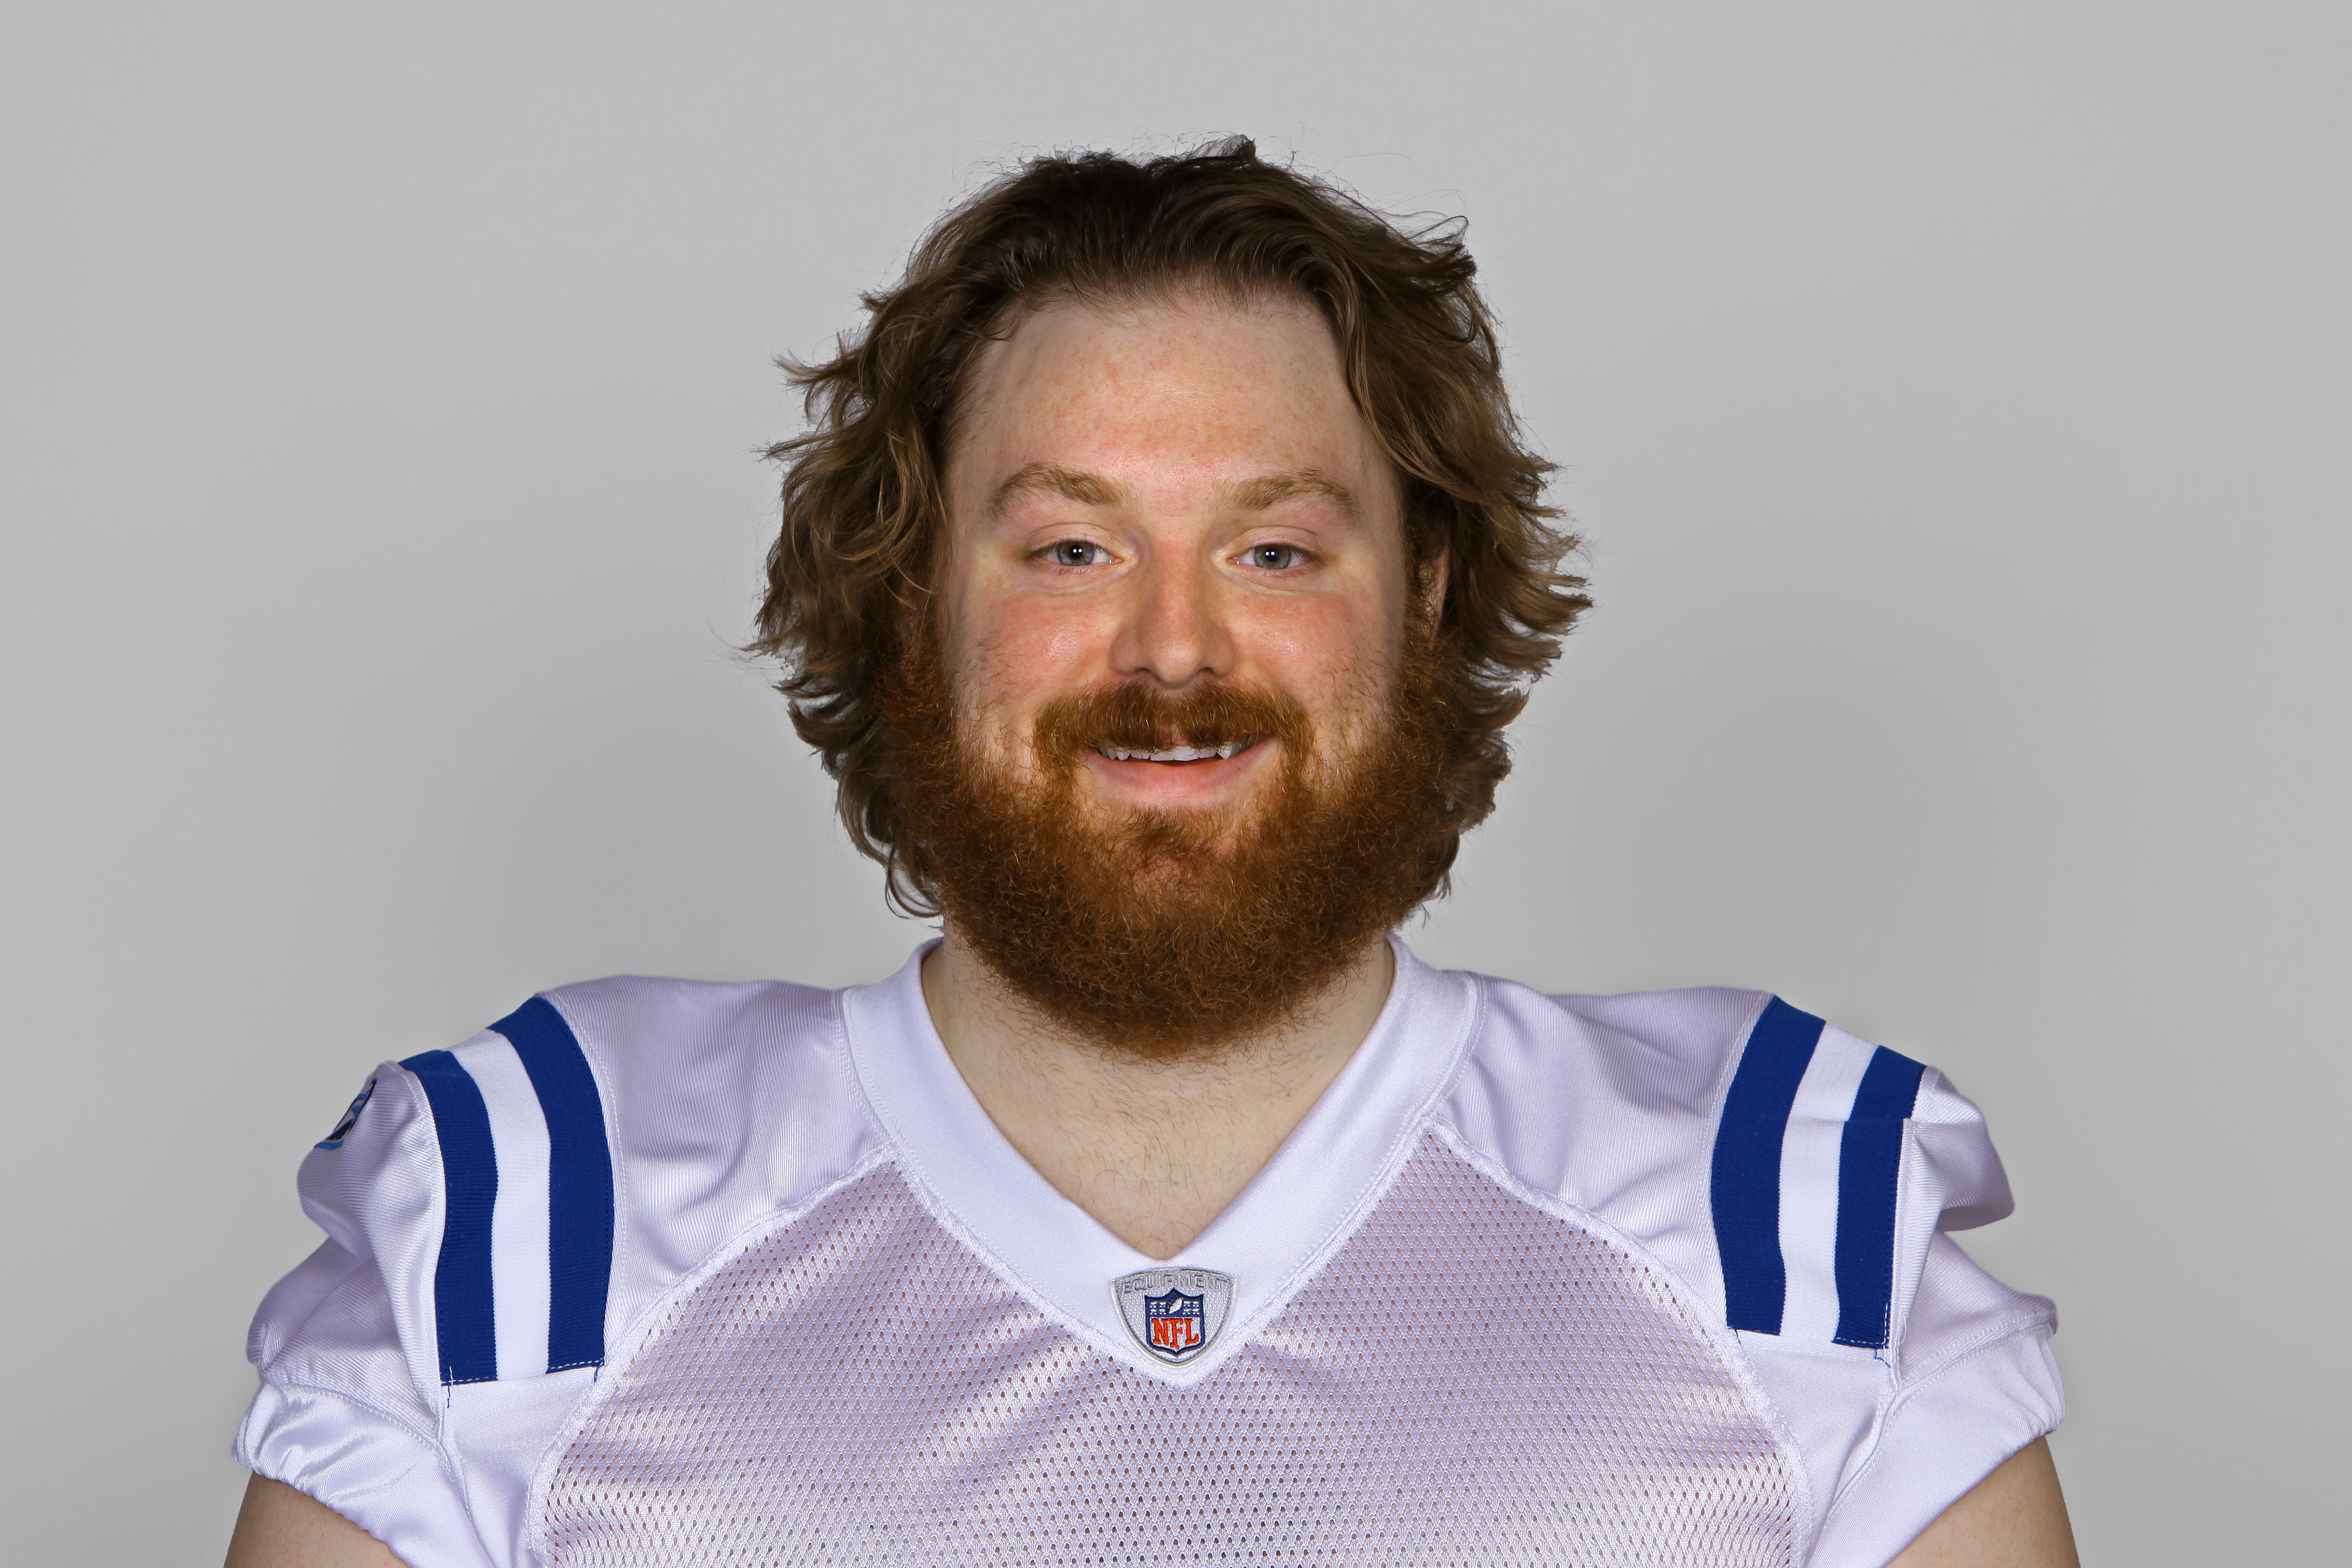 INDIANAPOLIS, IN - CIRCA 2010:  In this handout photo provided by the NFL, Adam Terry of the Indianapolis Colts poses for his 2010 NFL headshot circa 2010 in Indianapolis, Indiana.  (Photo by NFL via Getty Images)